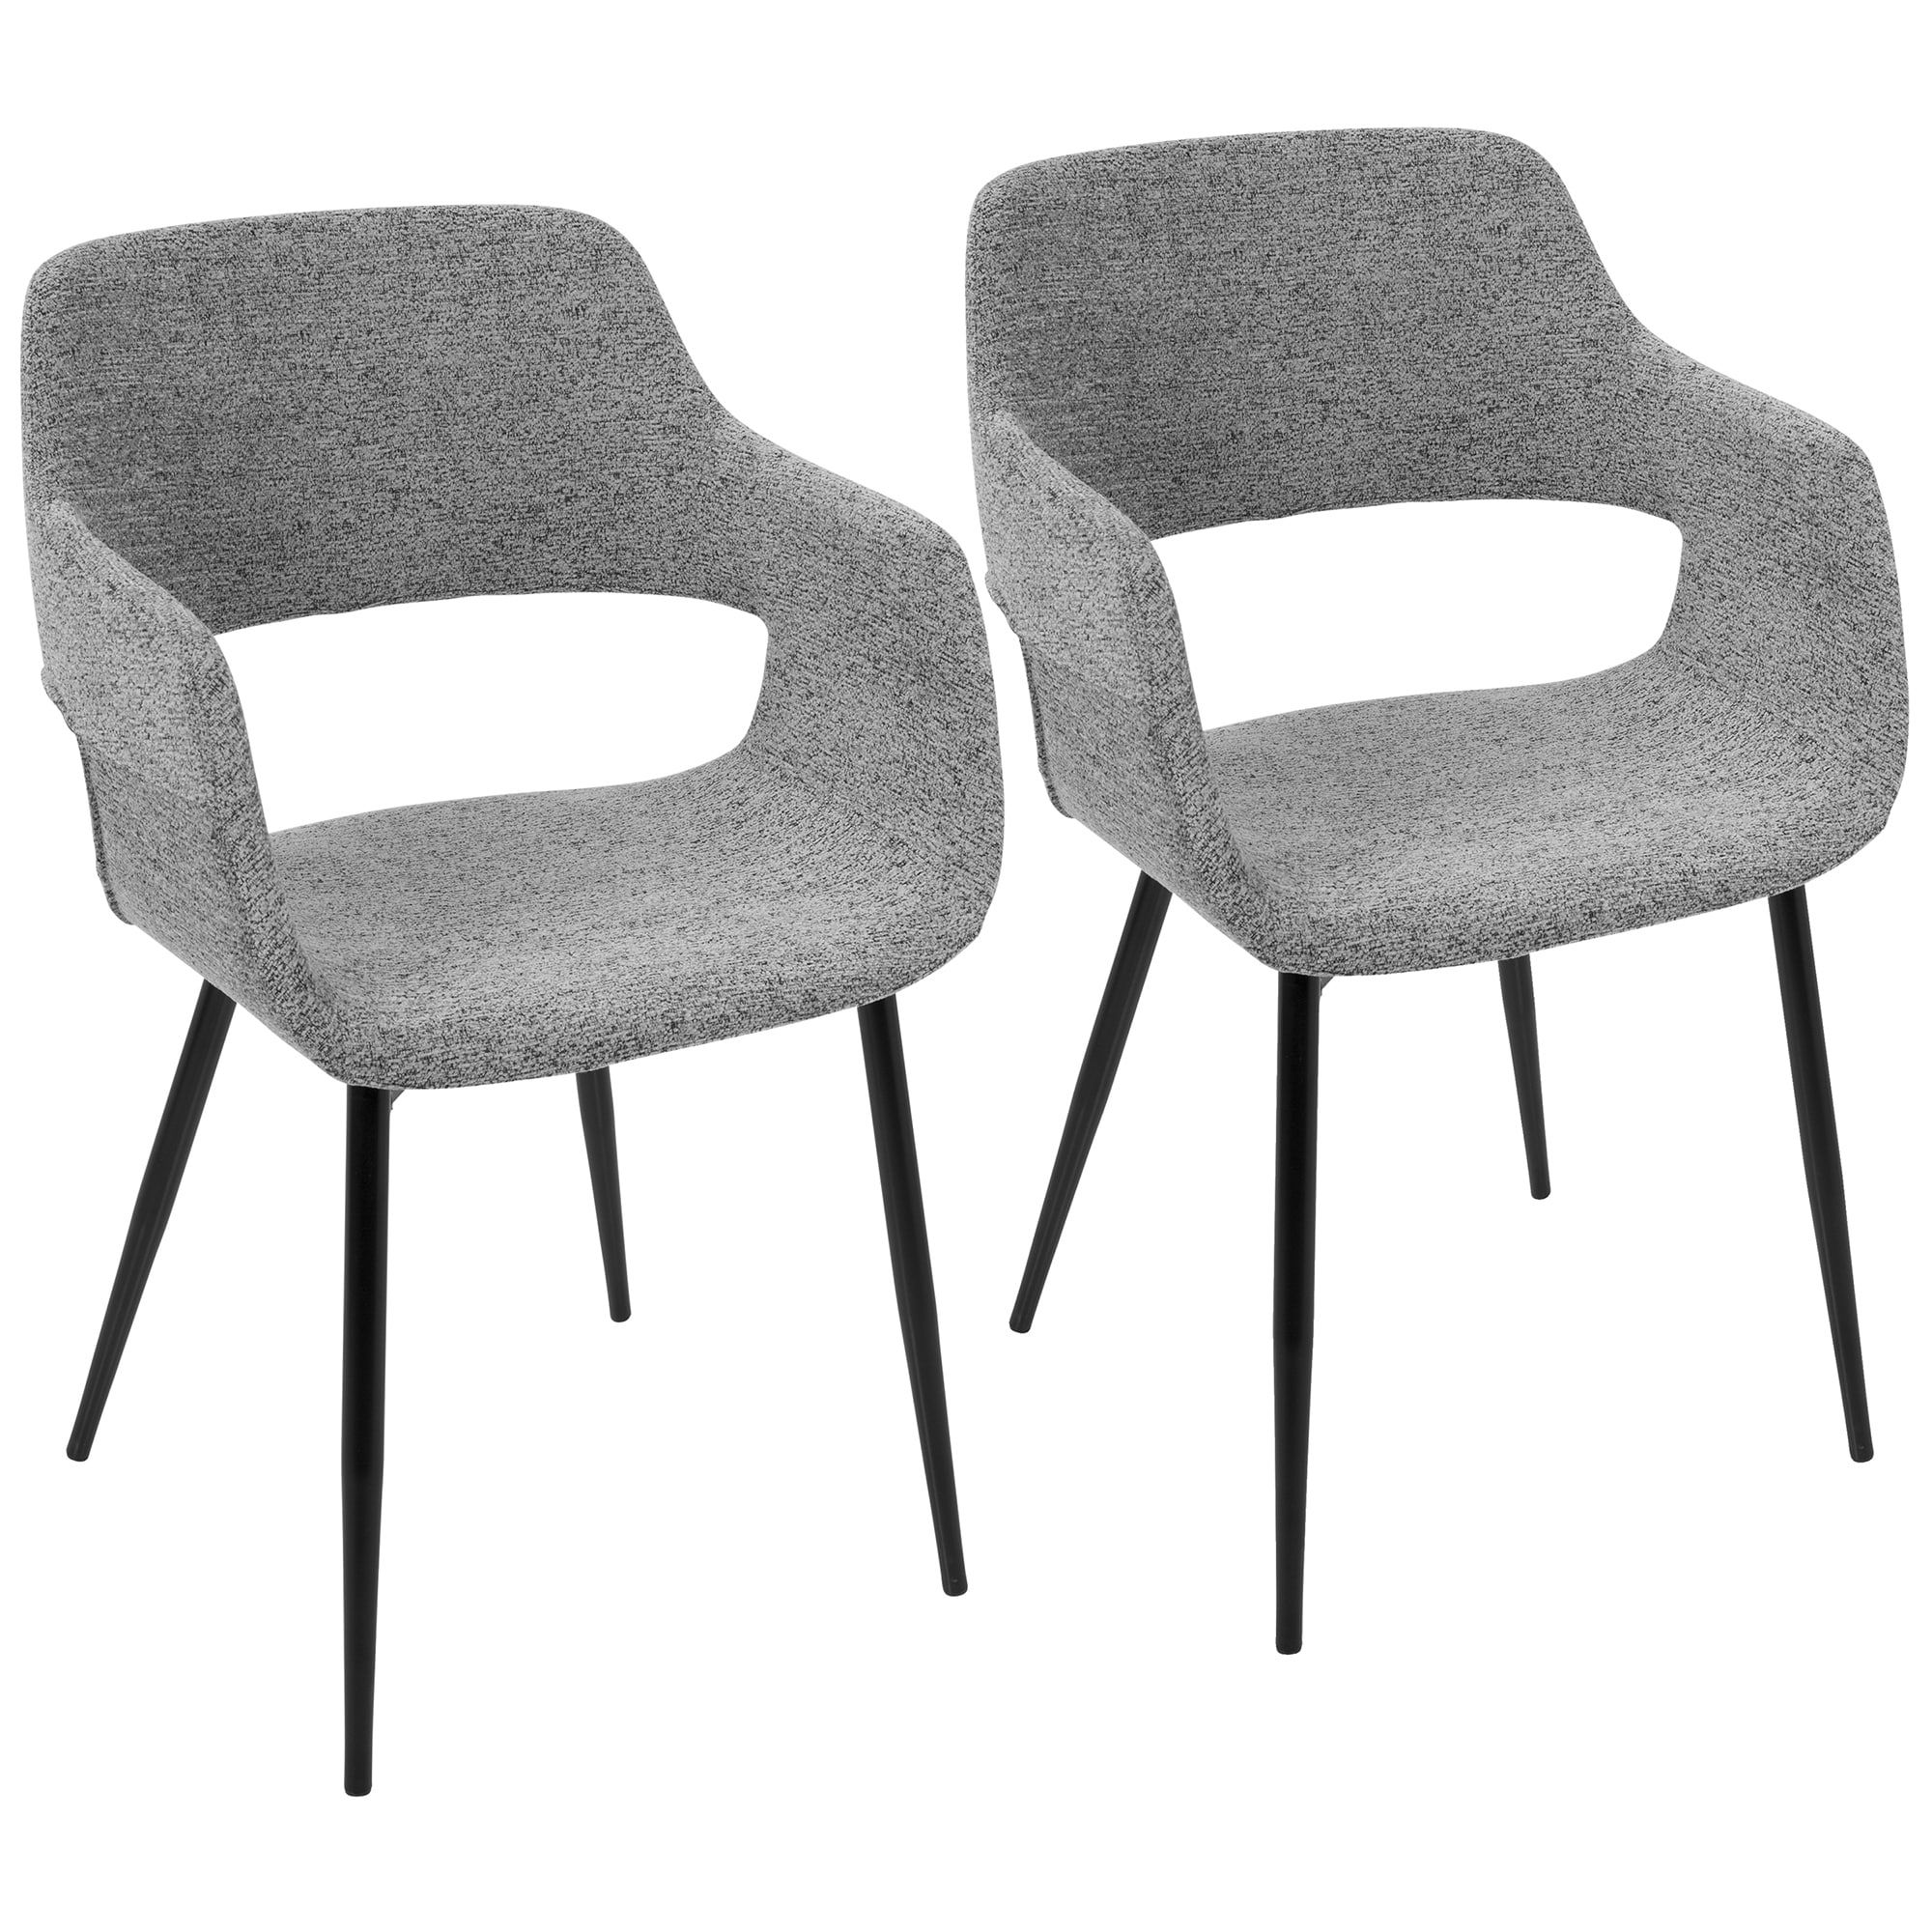 LumiSource Margarite Mid Century Modern Dining Accent Chair Set of